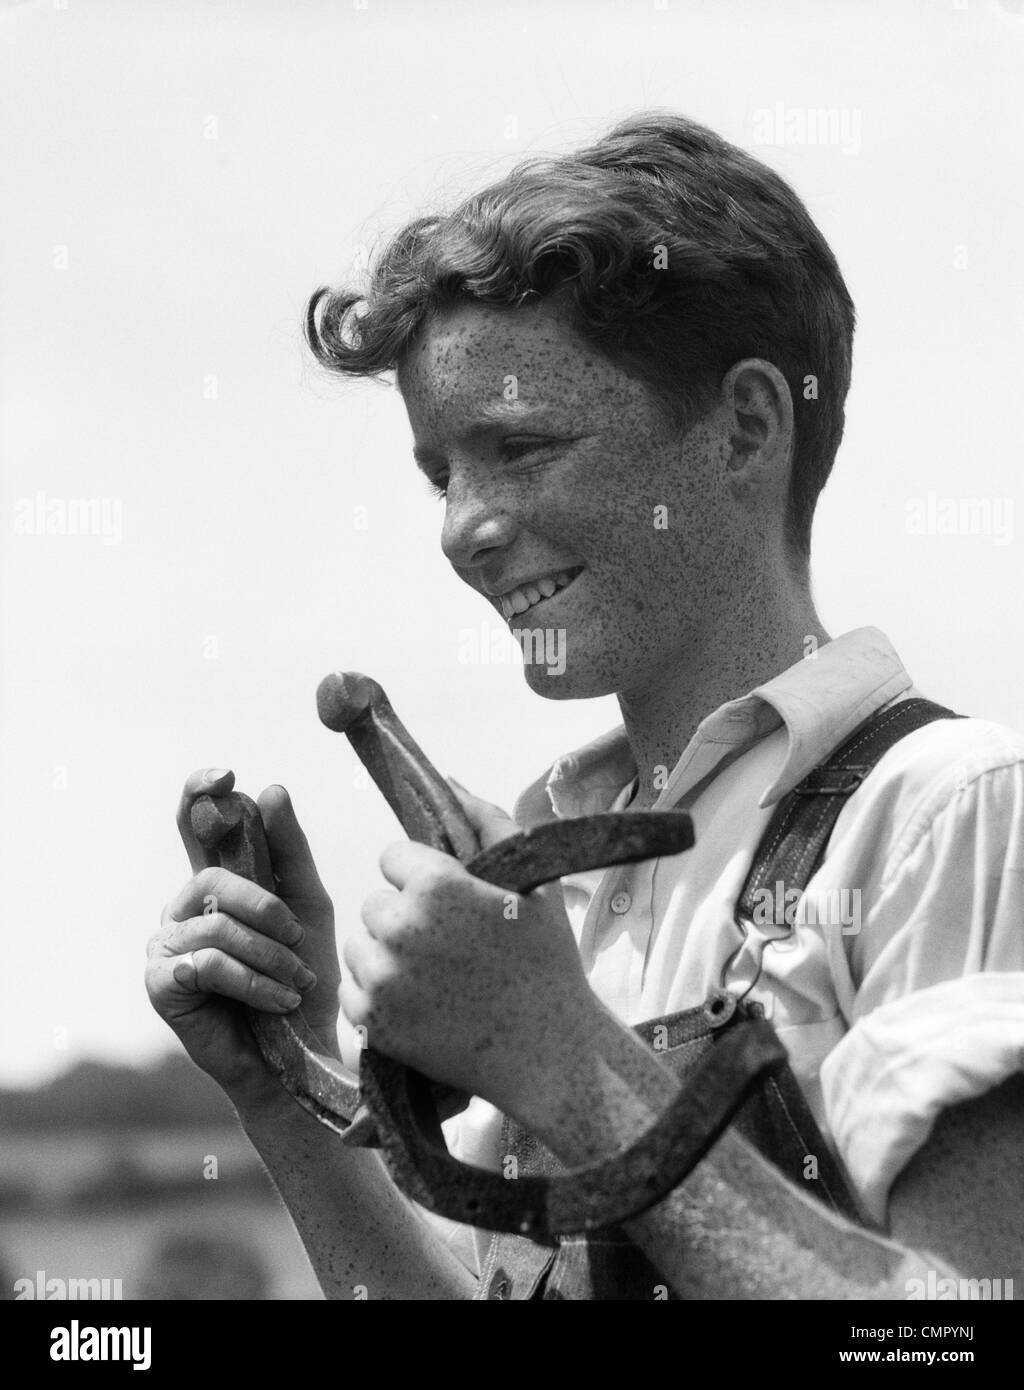 1930s CLOSE-UP OF SMILING FRECKLE-FACED BOY IN OVERALLS HOLDING TWO PITCHING HORSESHOES - Stock Image